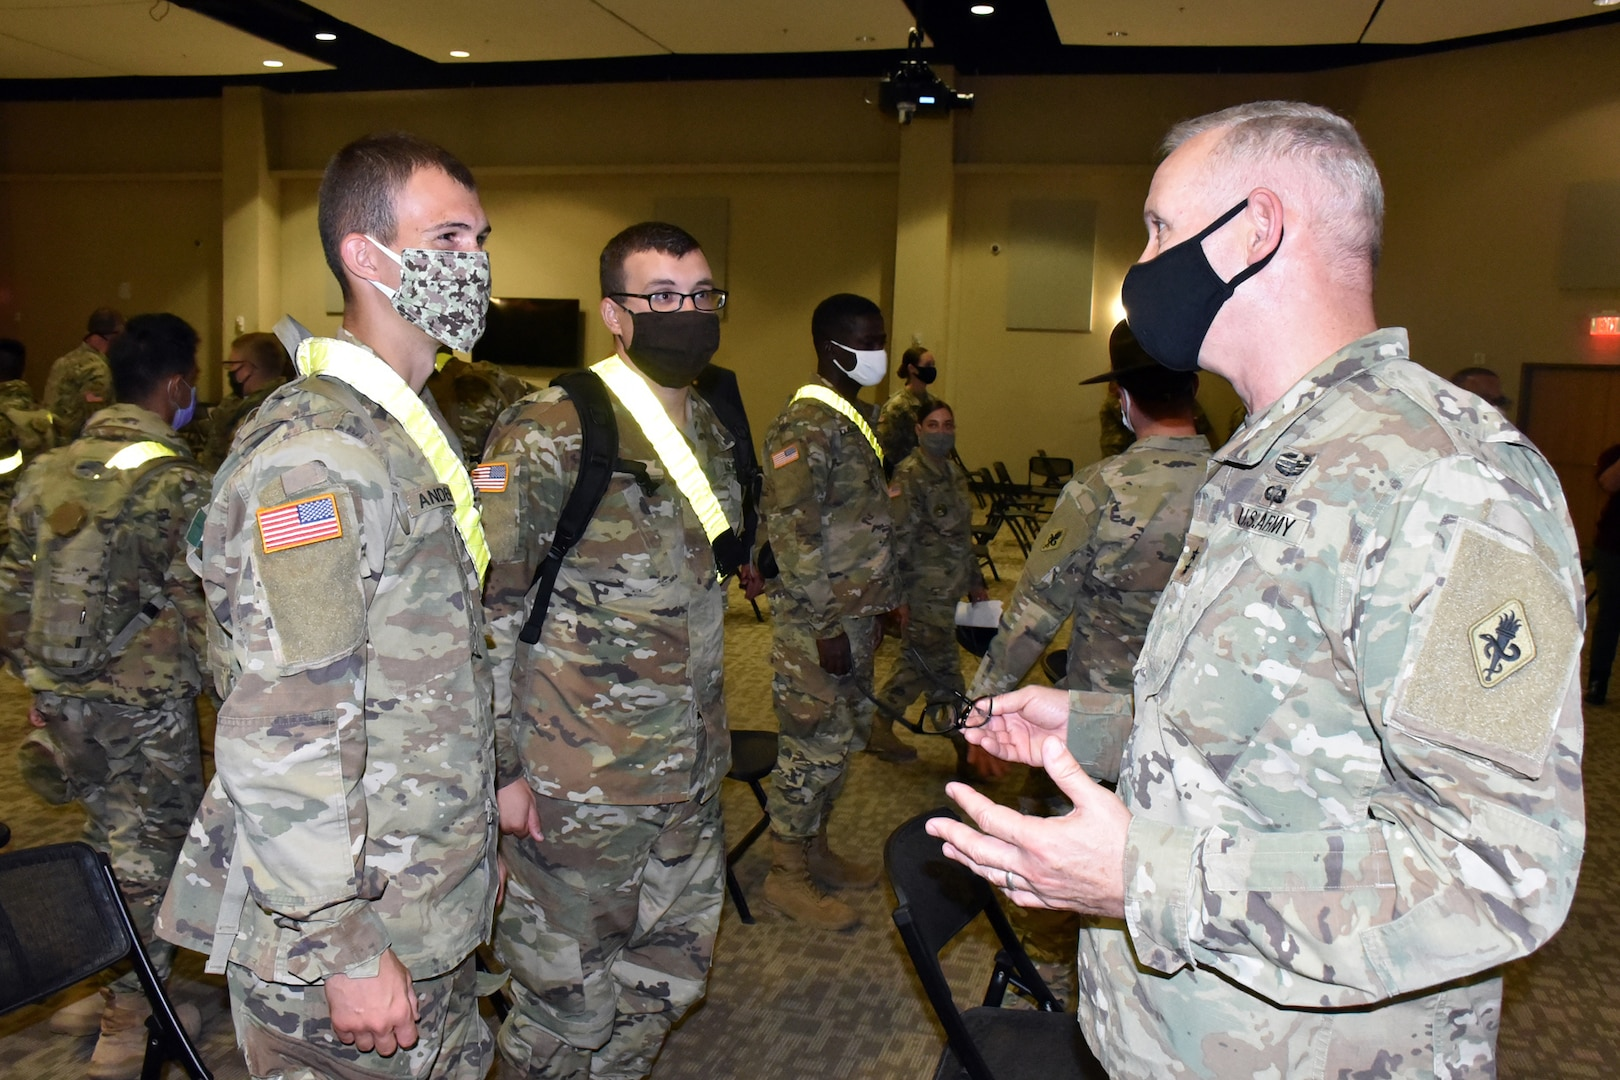 MEDCoE Army National Hiring Days Soldier Forum June 26 at Joint Base San Antonio-Fort Sam Houston